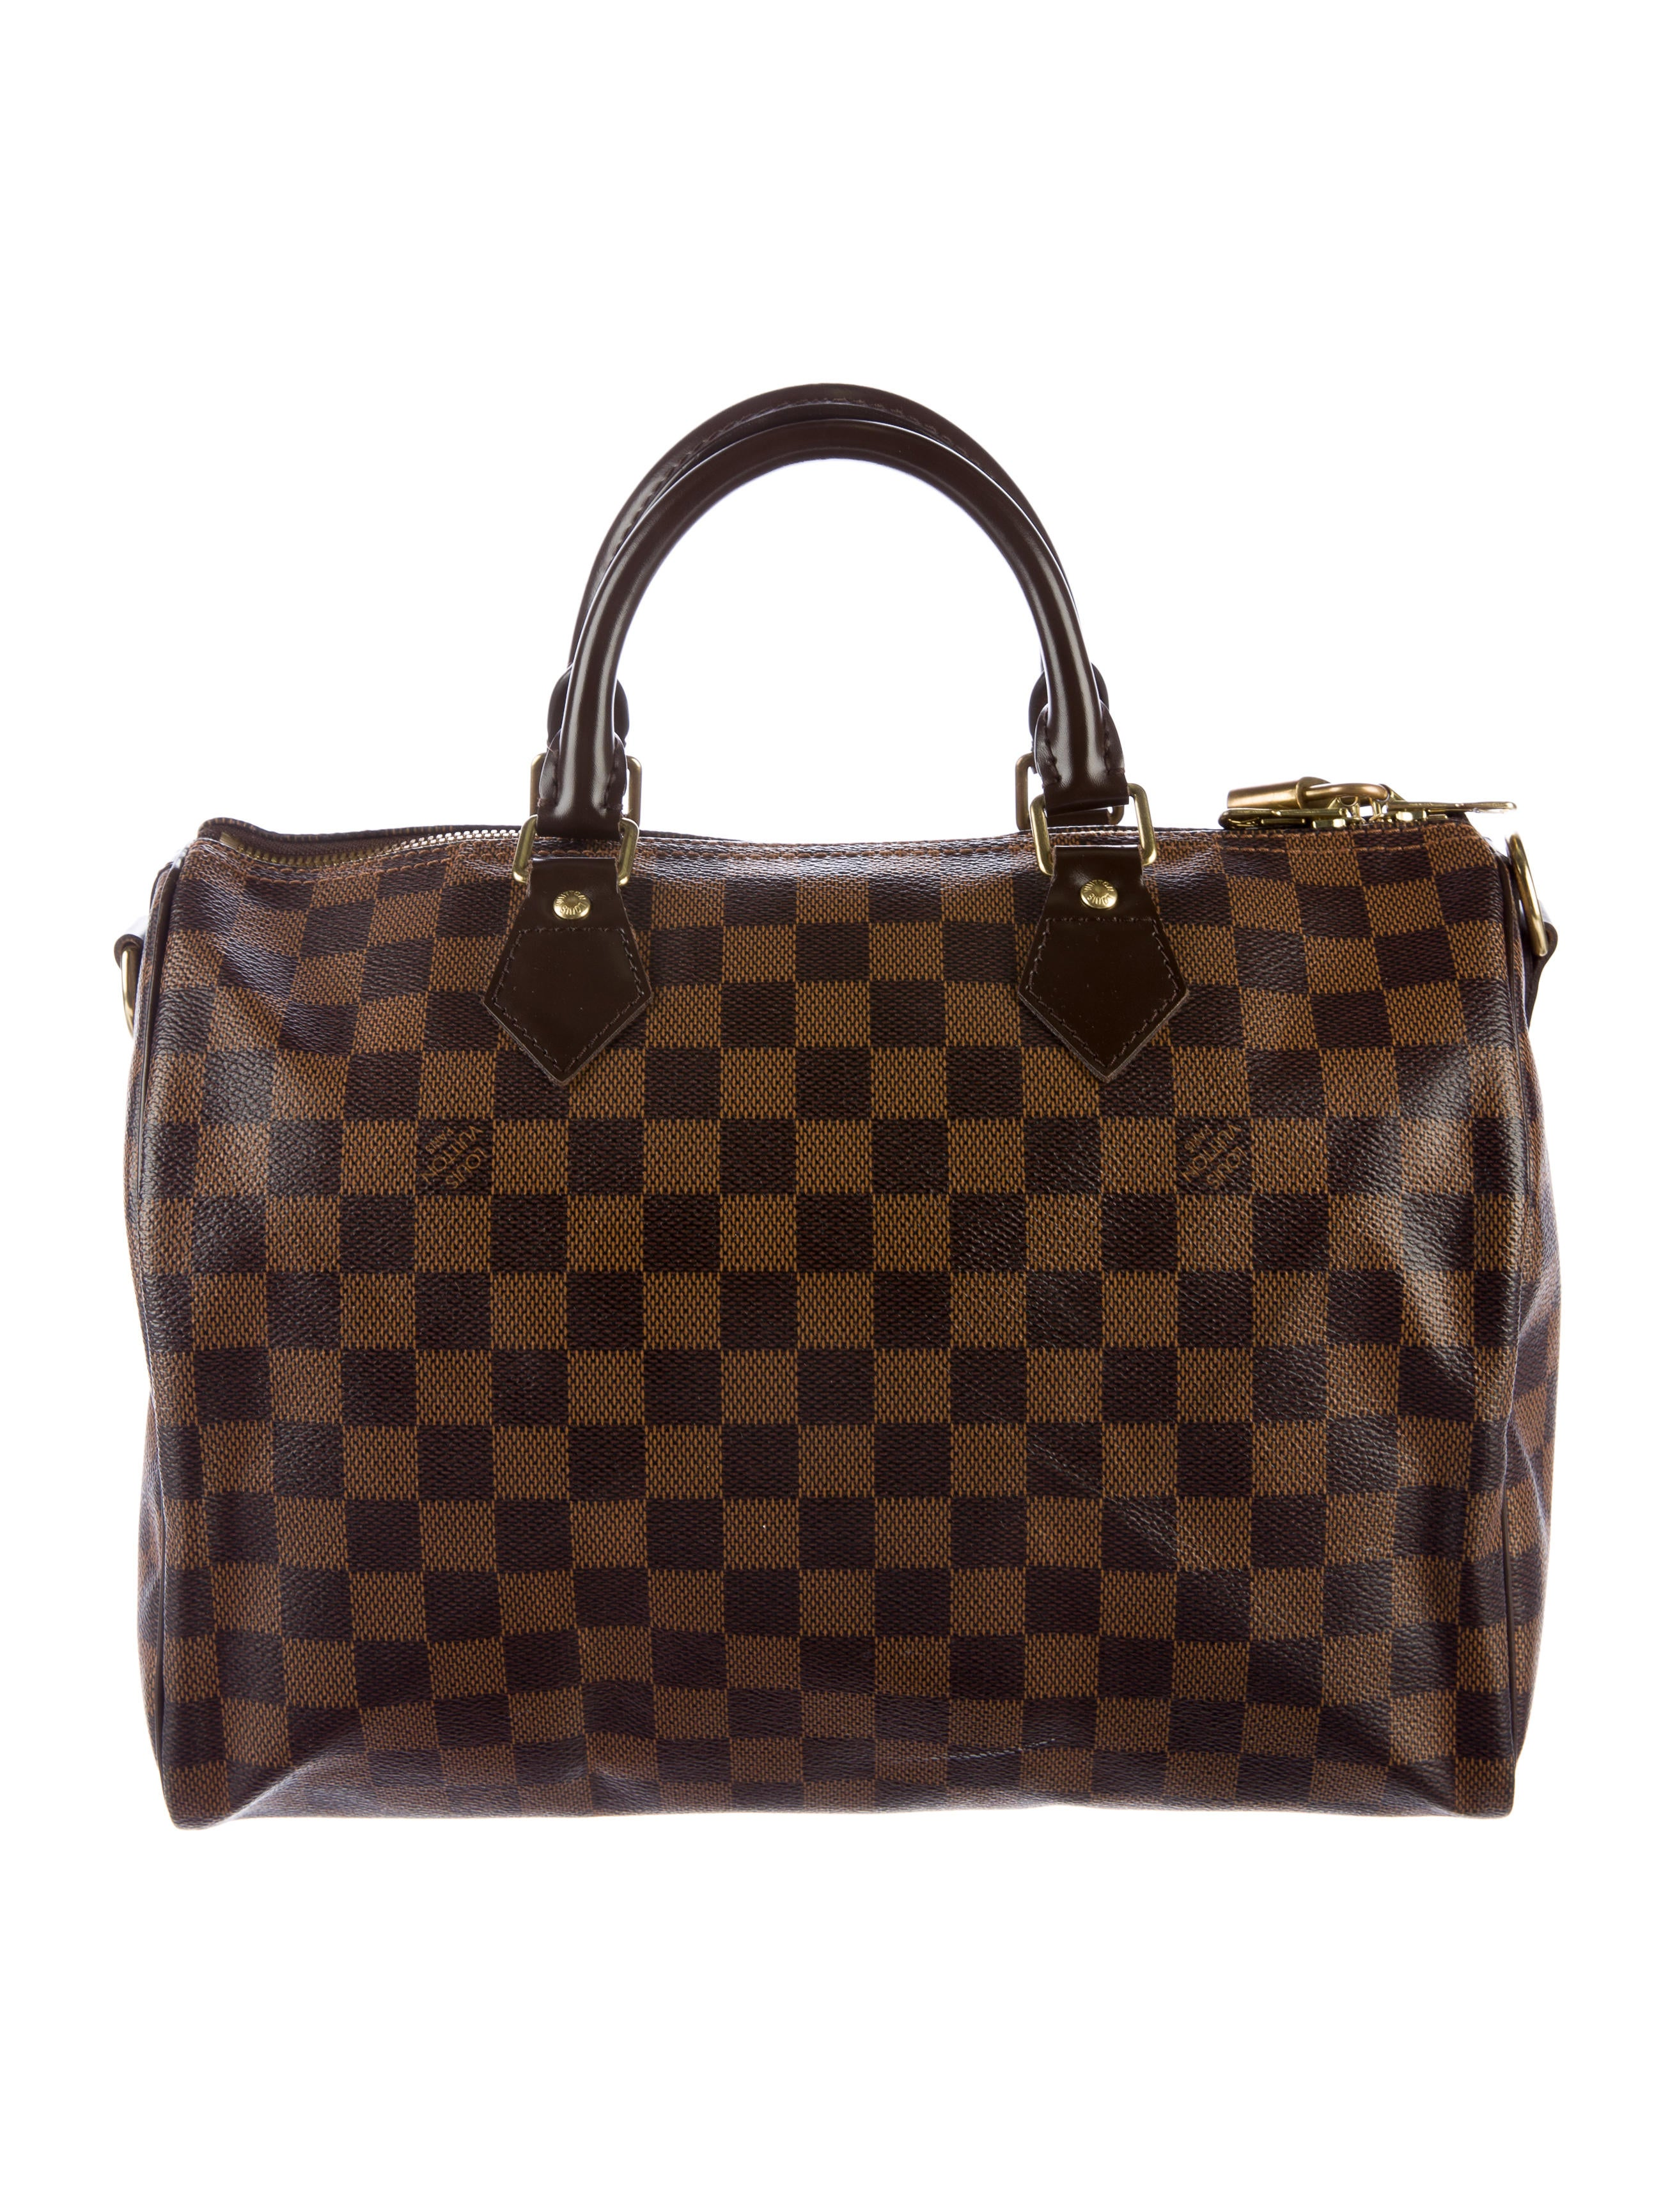 speedy bandouliere 30 date code How to spot authentic louis vuitton speedy 30 damier azur bag and where to find the date code.